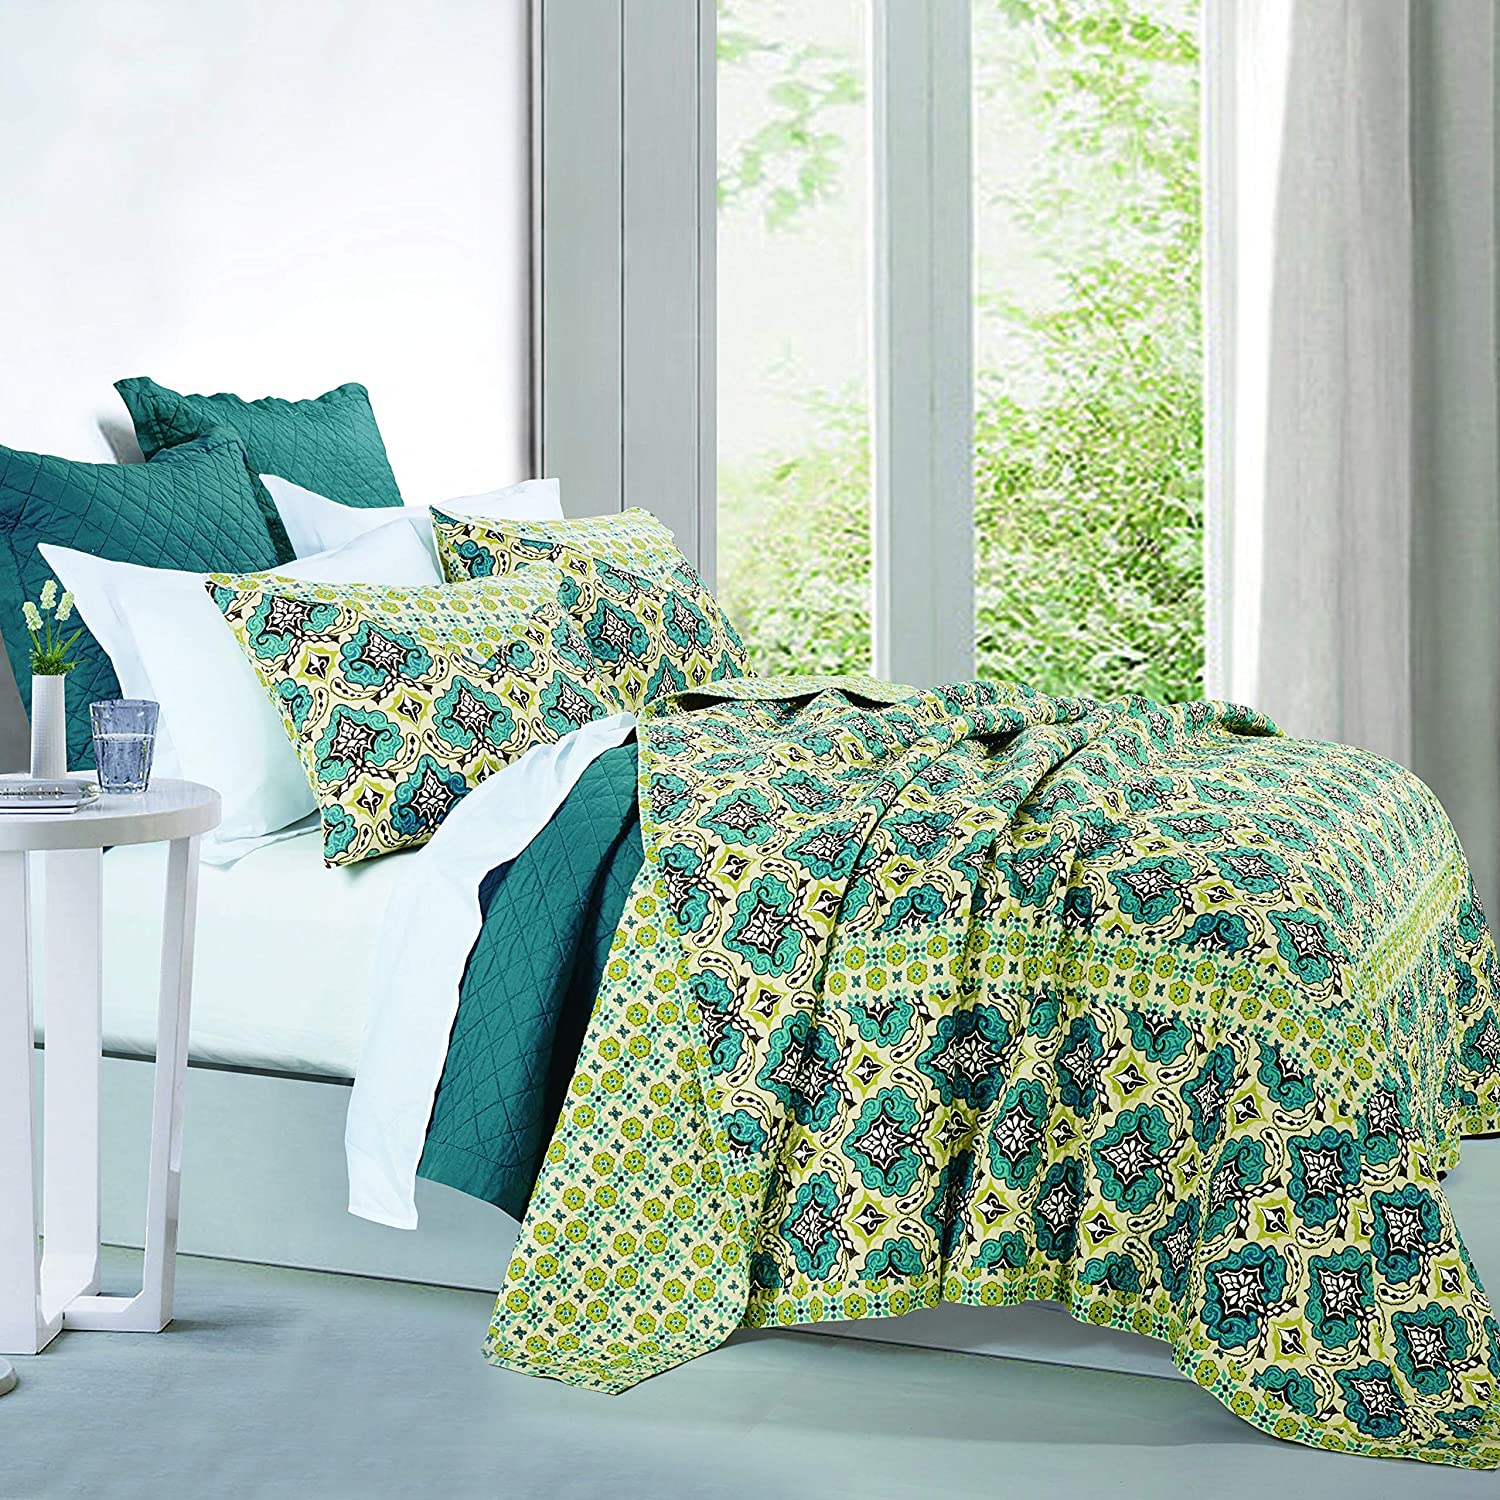 HiEnd Accents New product! New type Recommended 3 PC Salado Quilt Queen Set Full